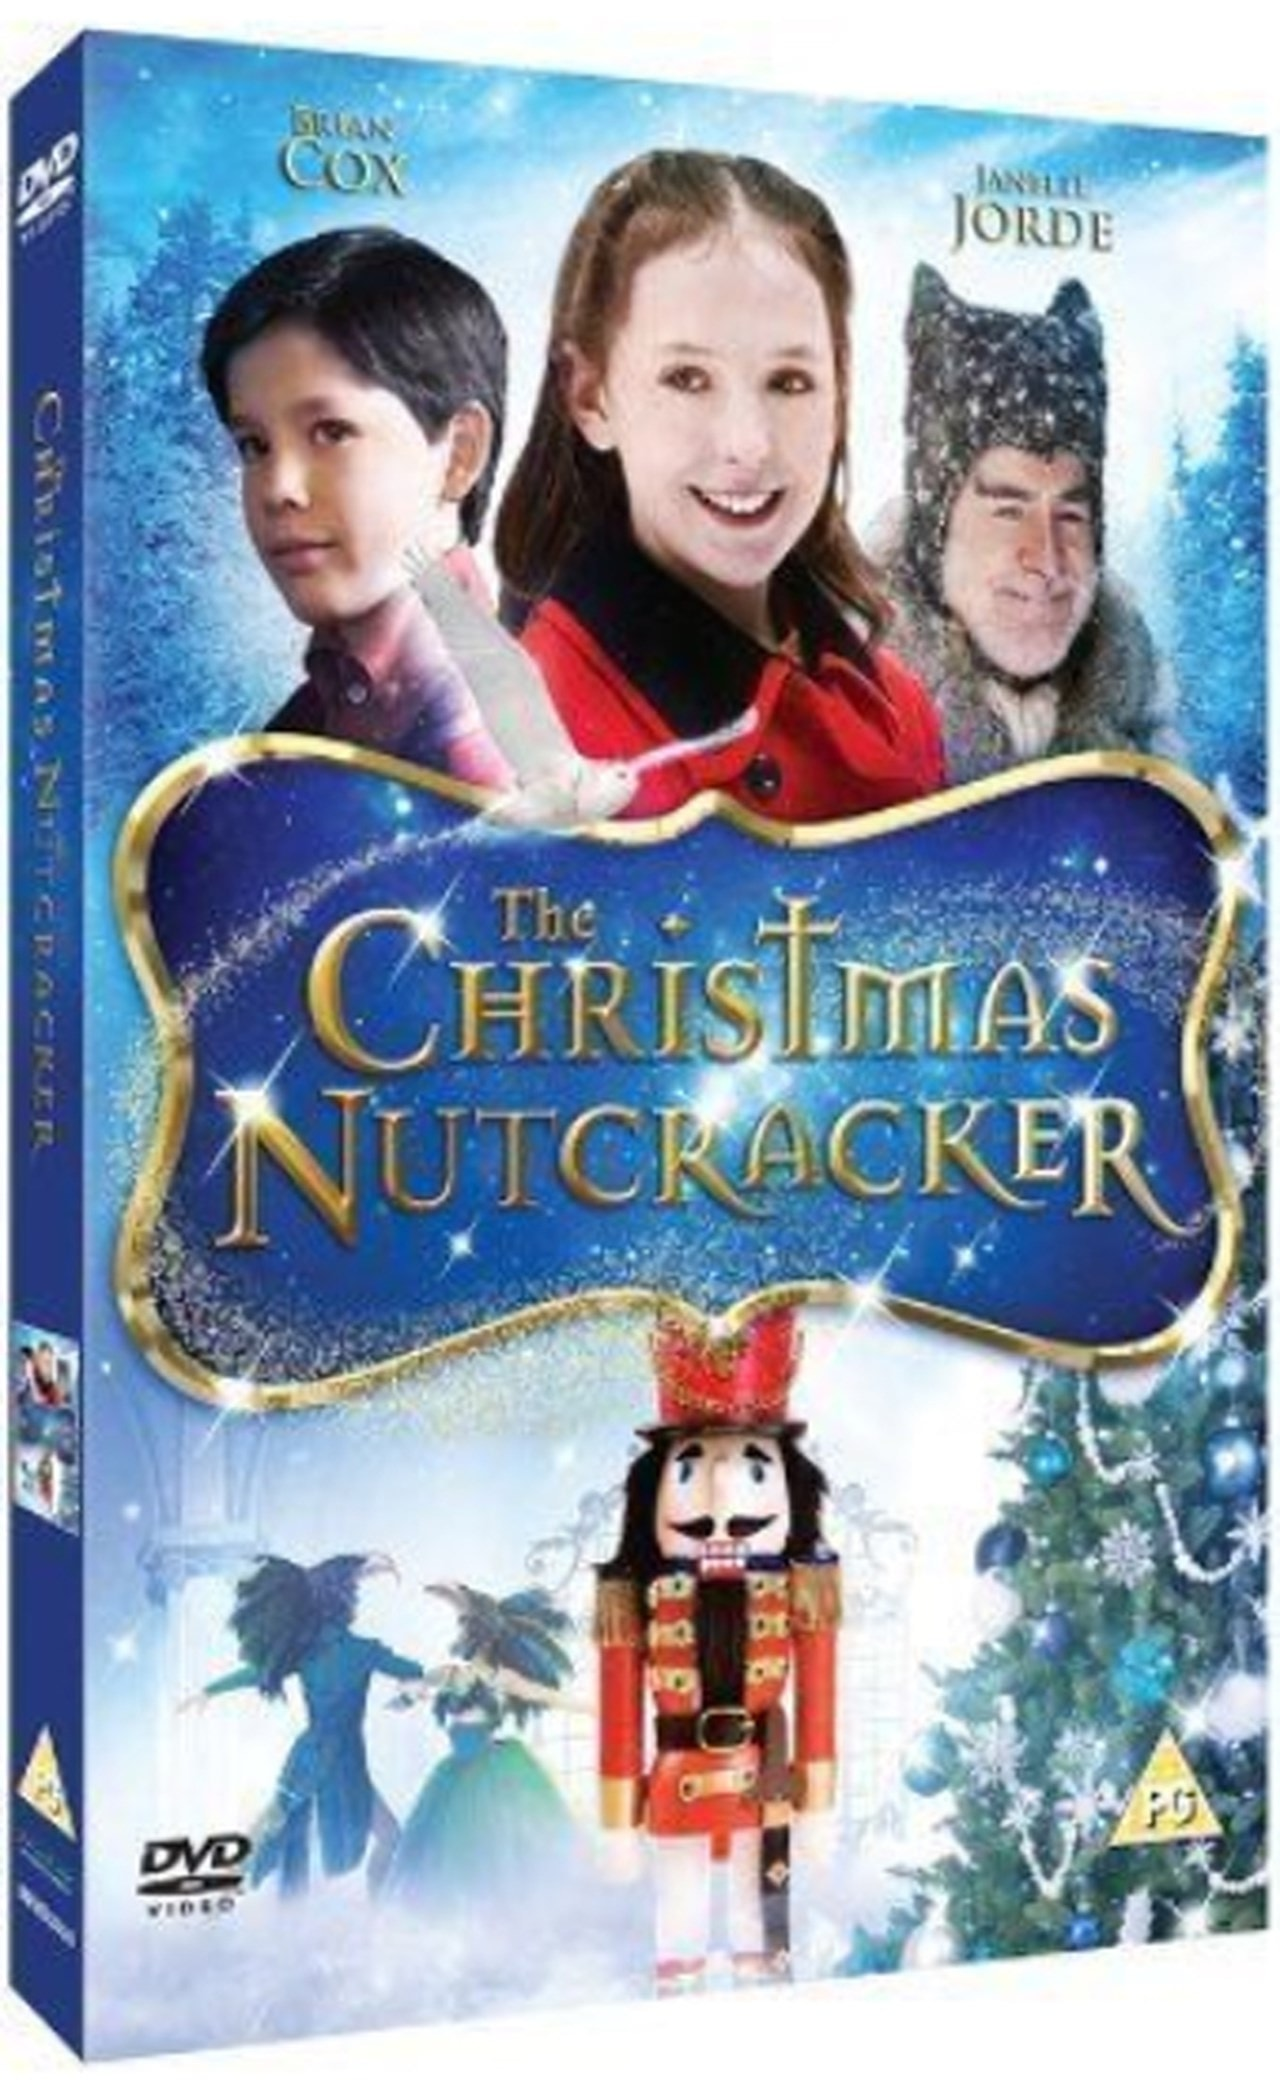 The Christmas Nutcracker - 1